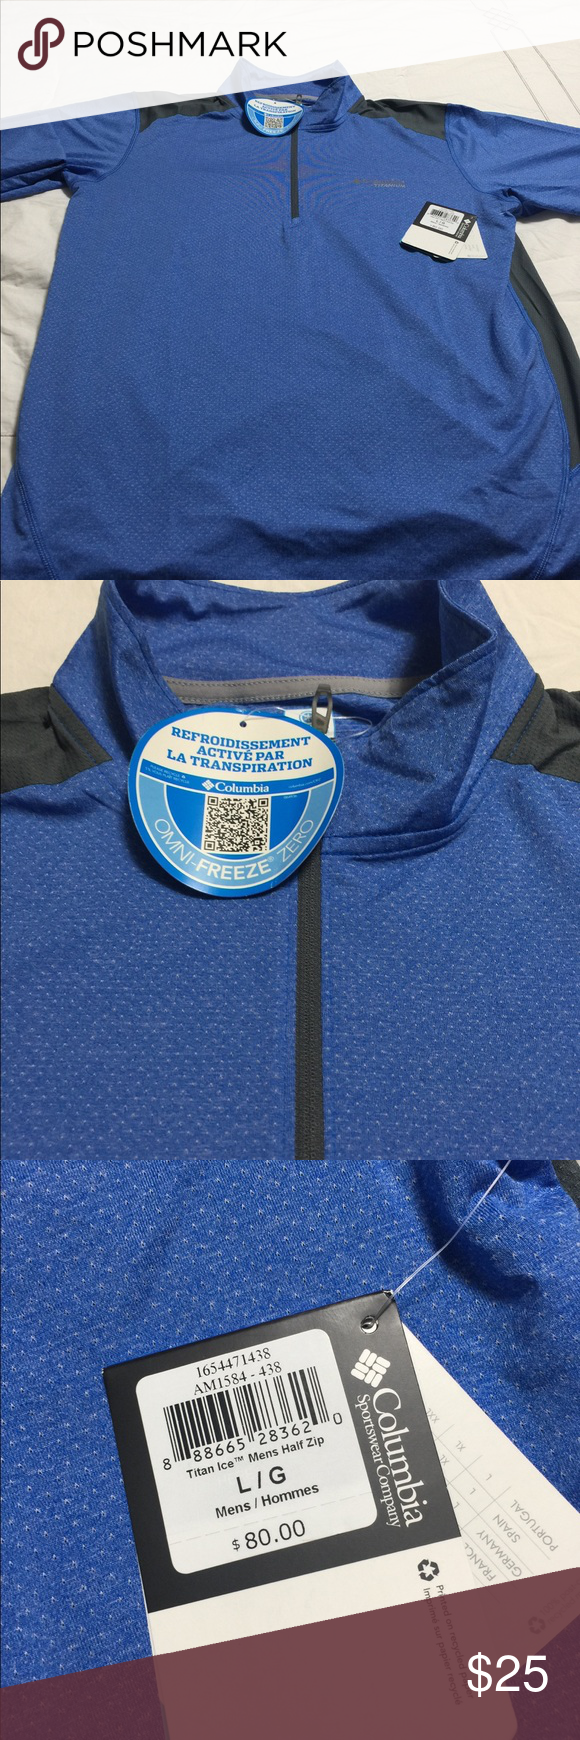 Columbia ultra half zip running shirt men s BRAND  Columbia CONDITION  New  with tags d896d8668